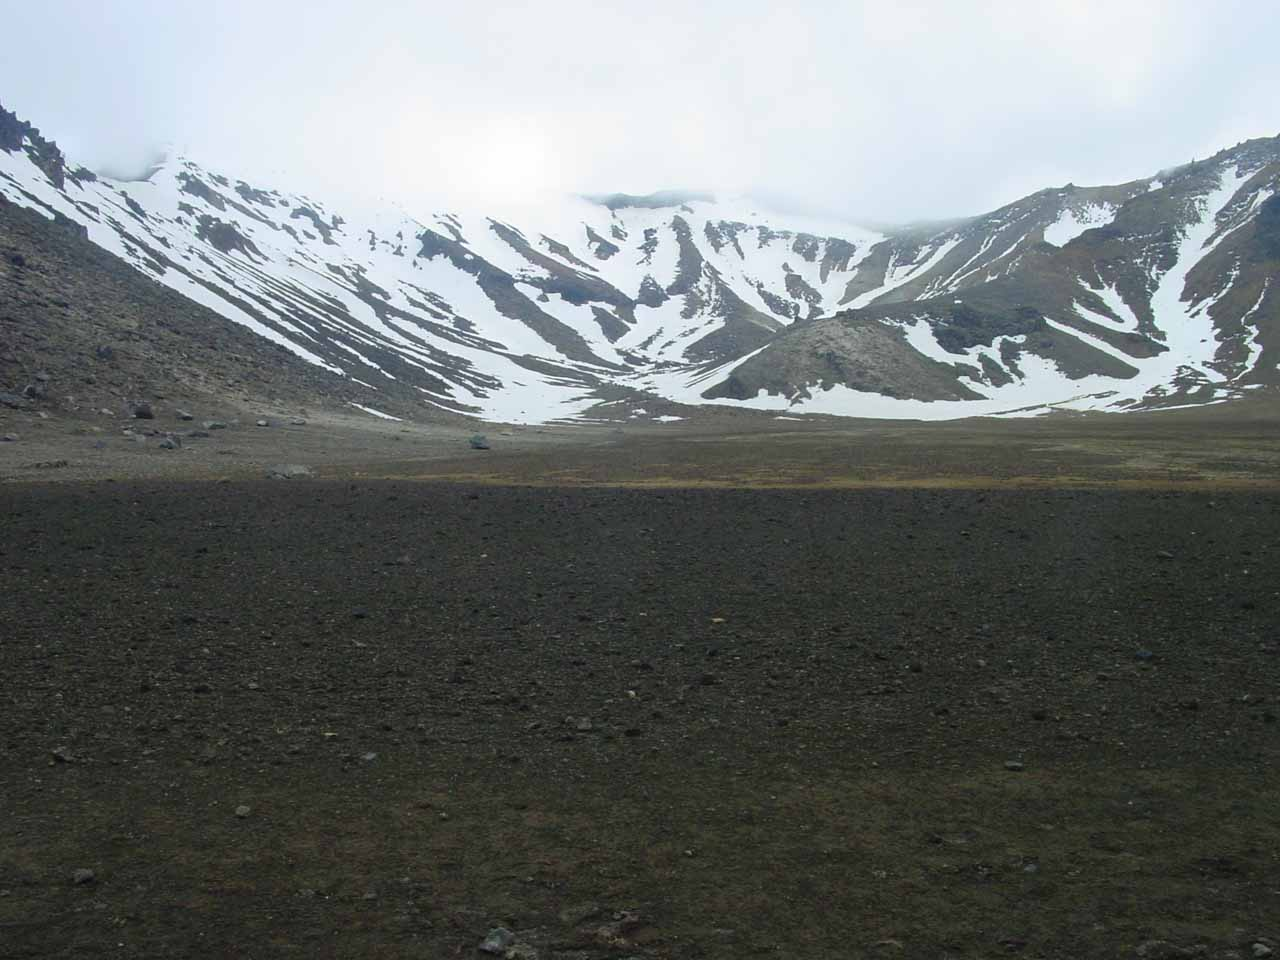 Starting the traverse through the South Crater of the Tongariro Crossing